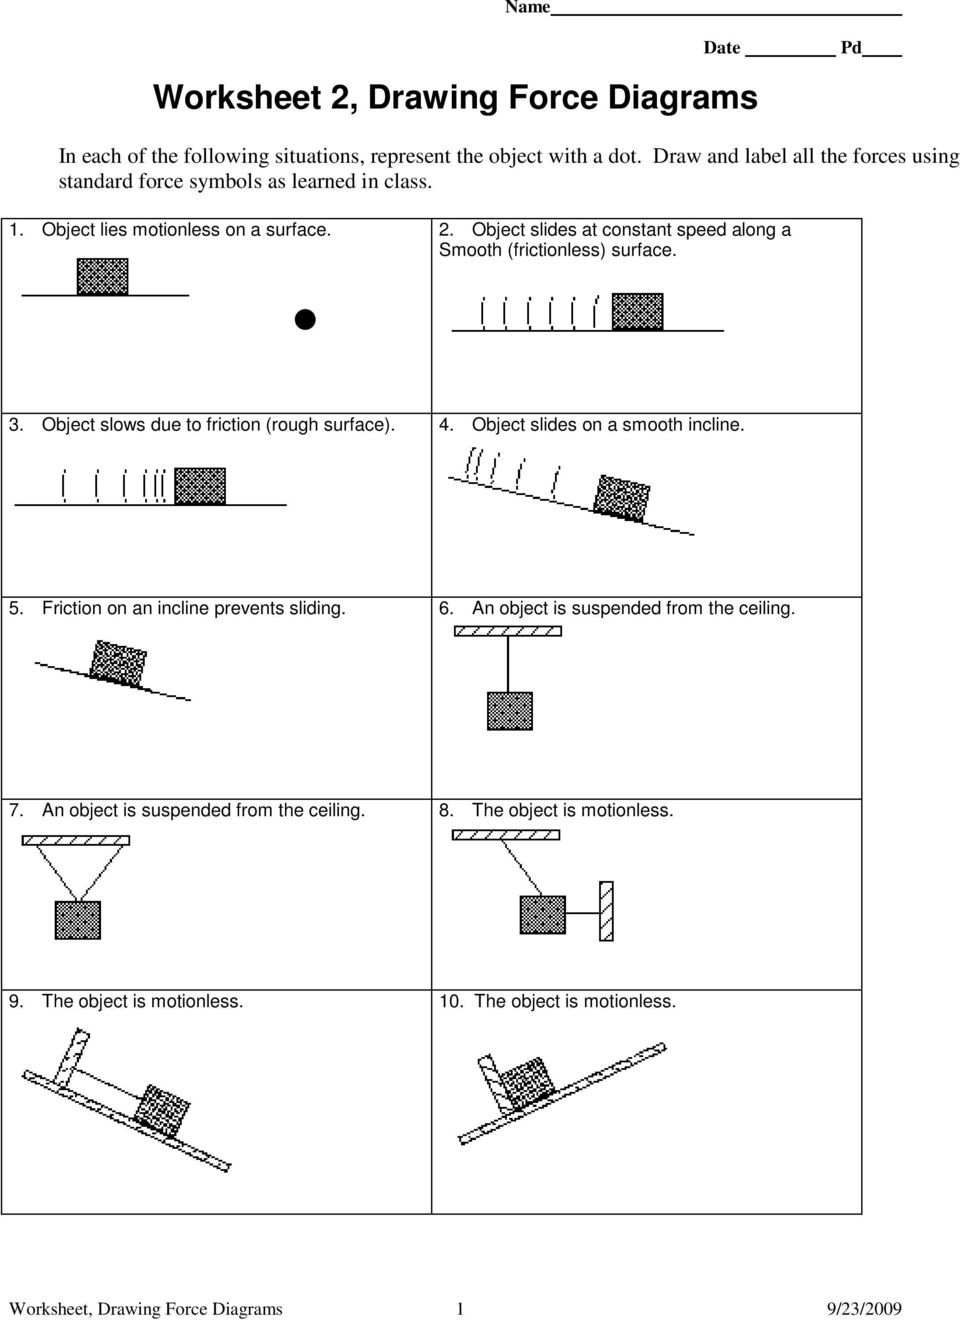 Physics Free Body Diagram Worksheet Answers